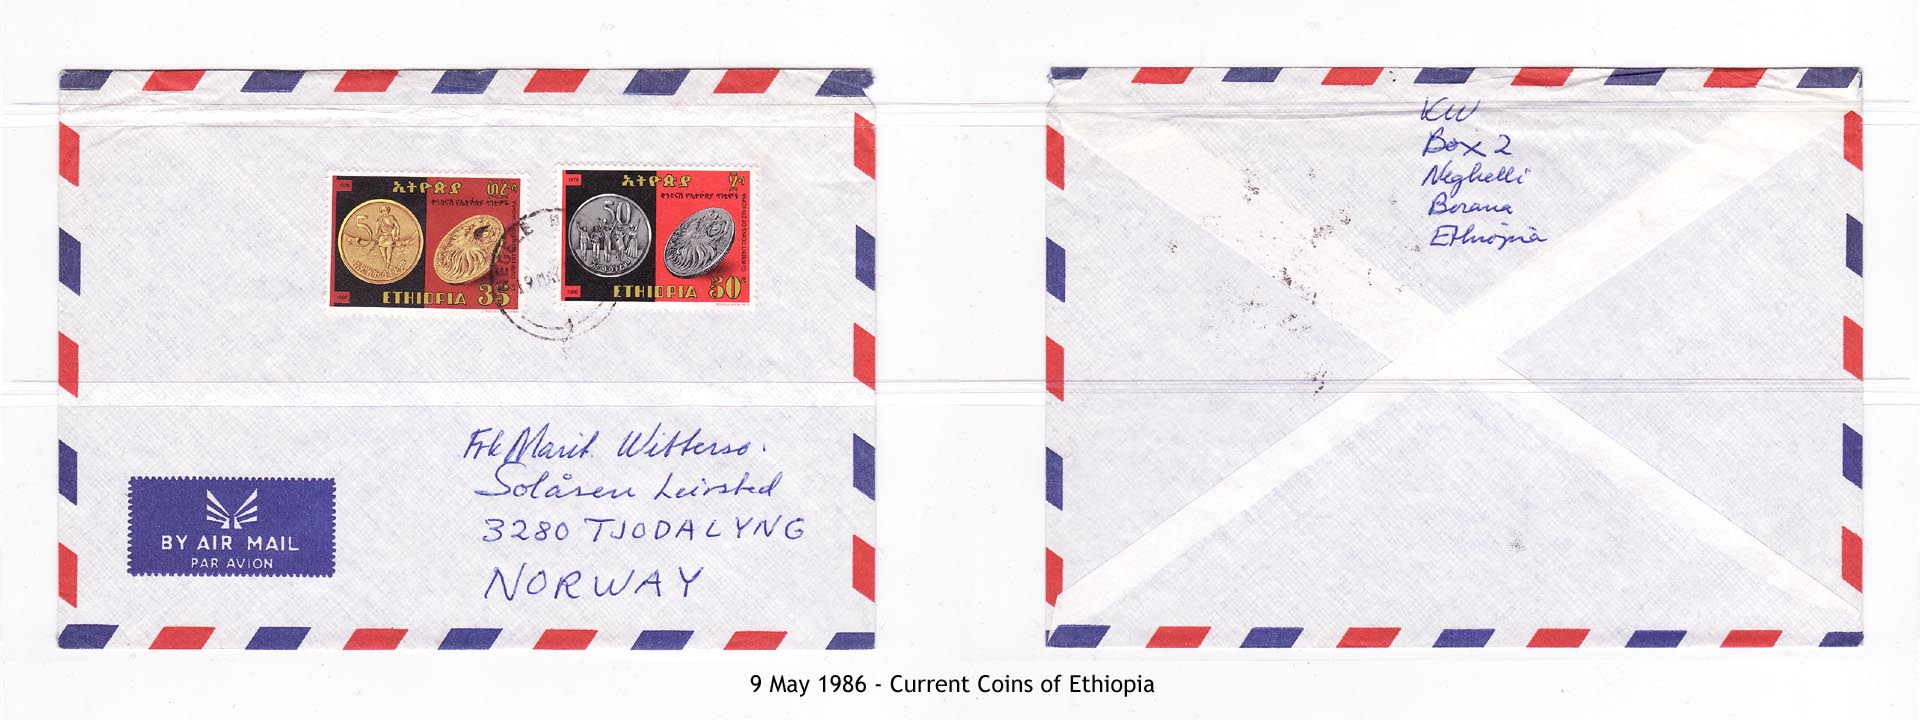 19860509 - Current Coins of Ethiopia